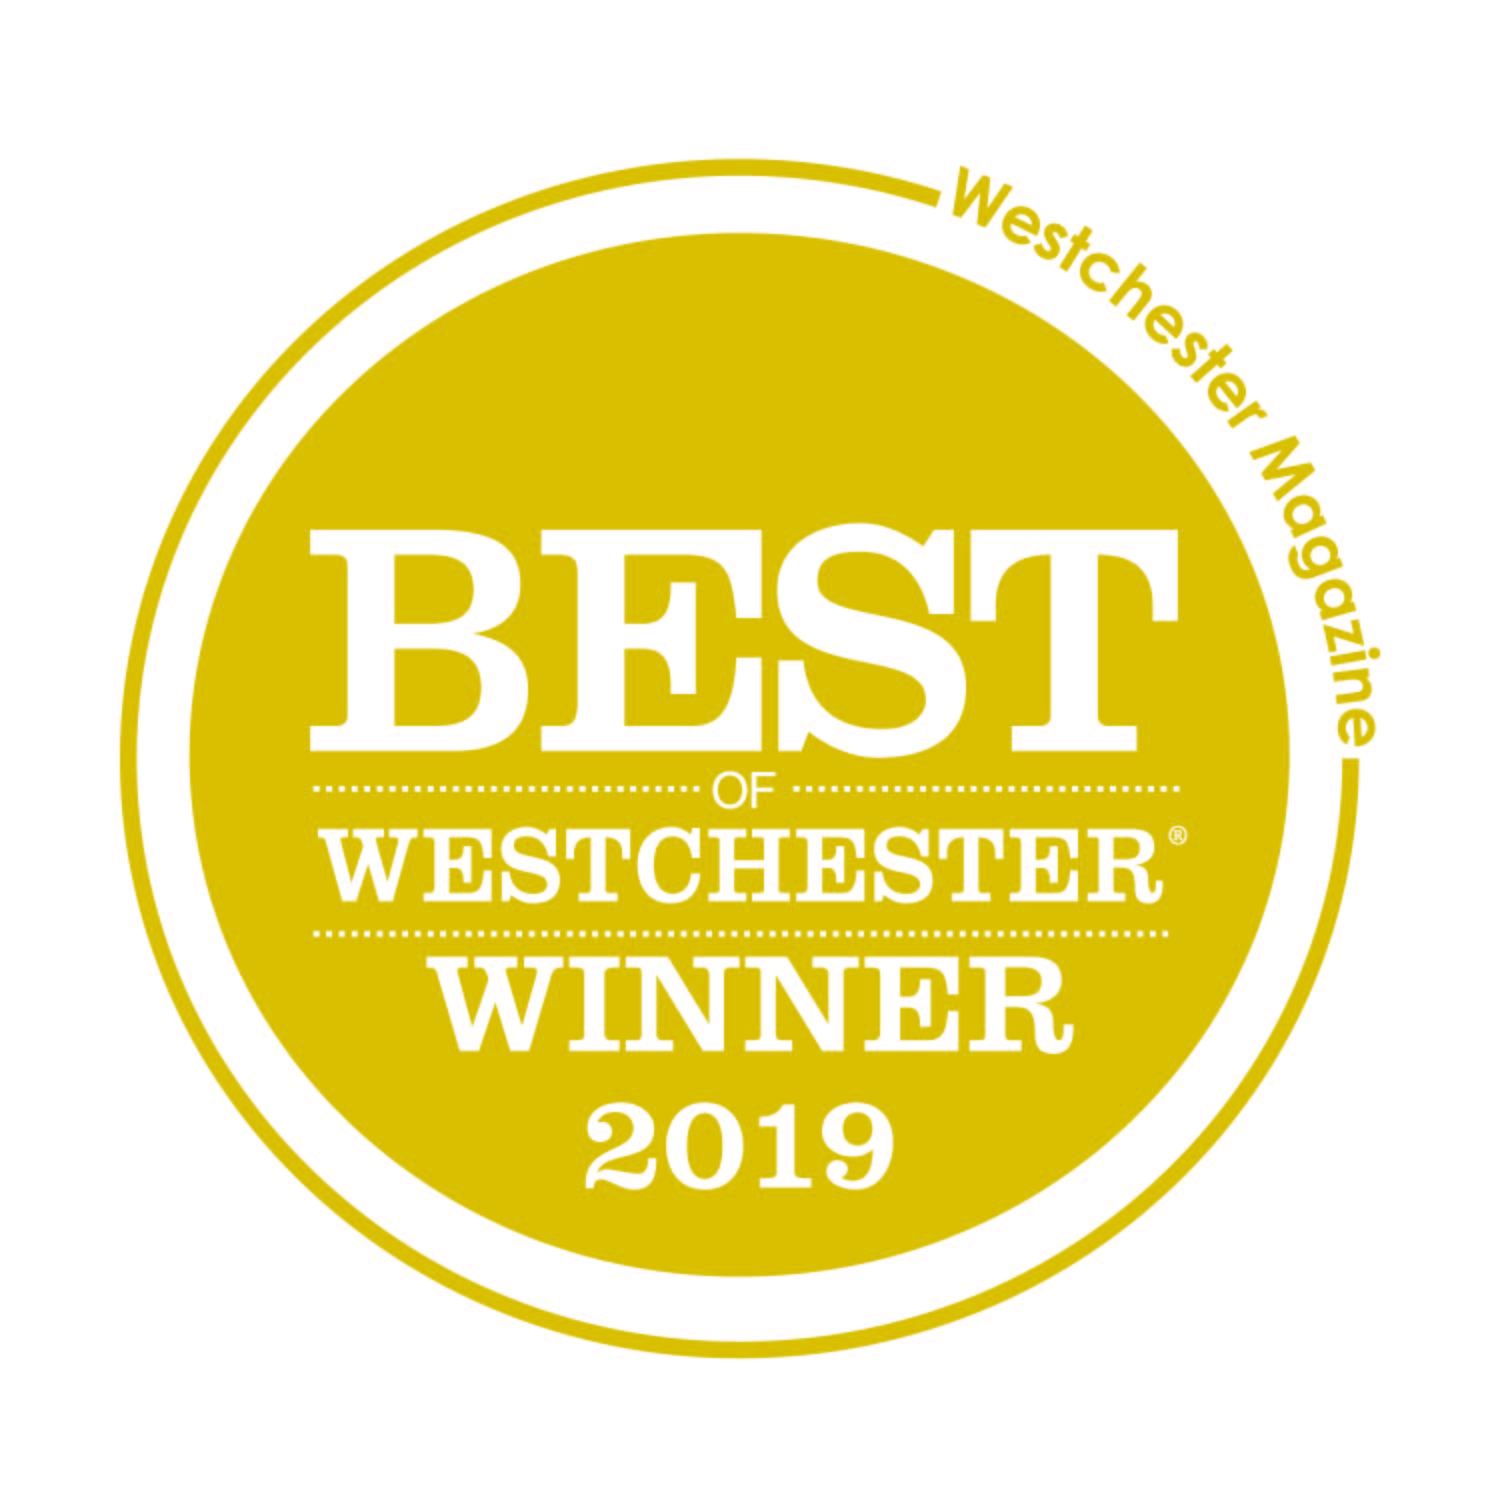 Best Of Westchester 2019 Tickets for 2019 Best of Westchester Restaurant Winners in New